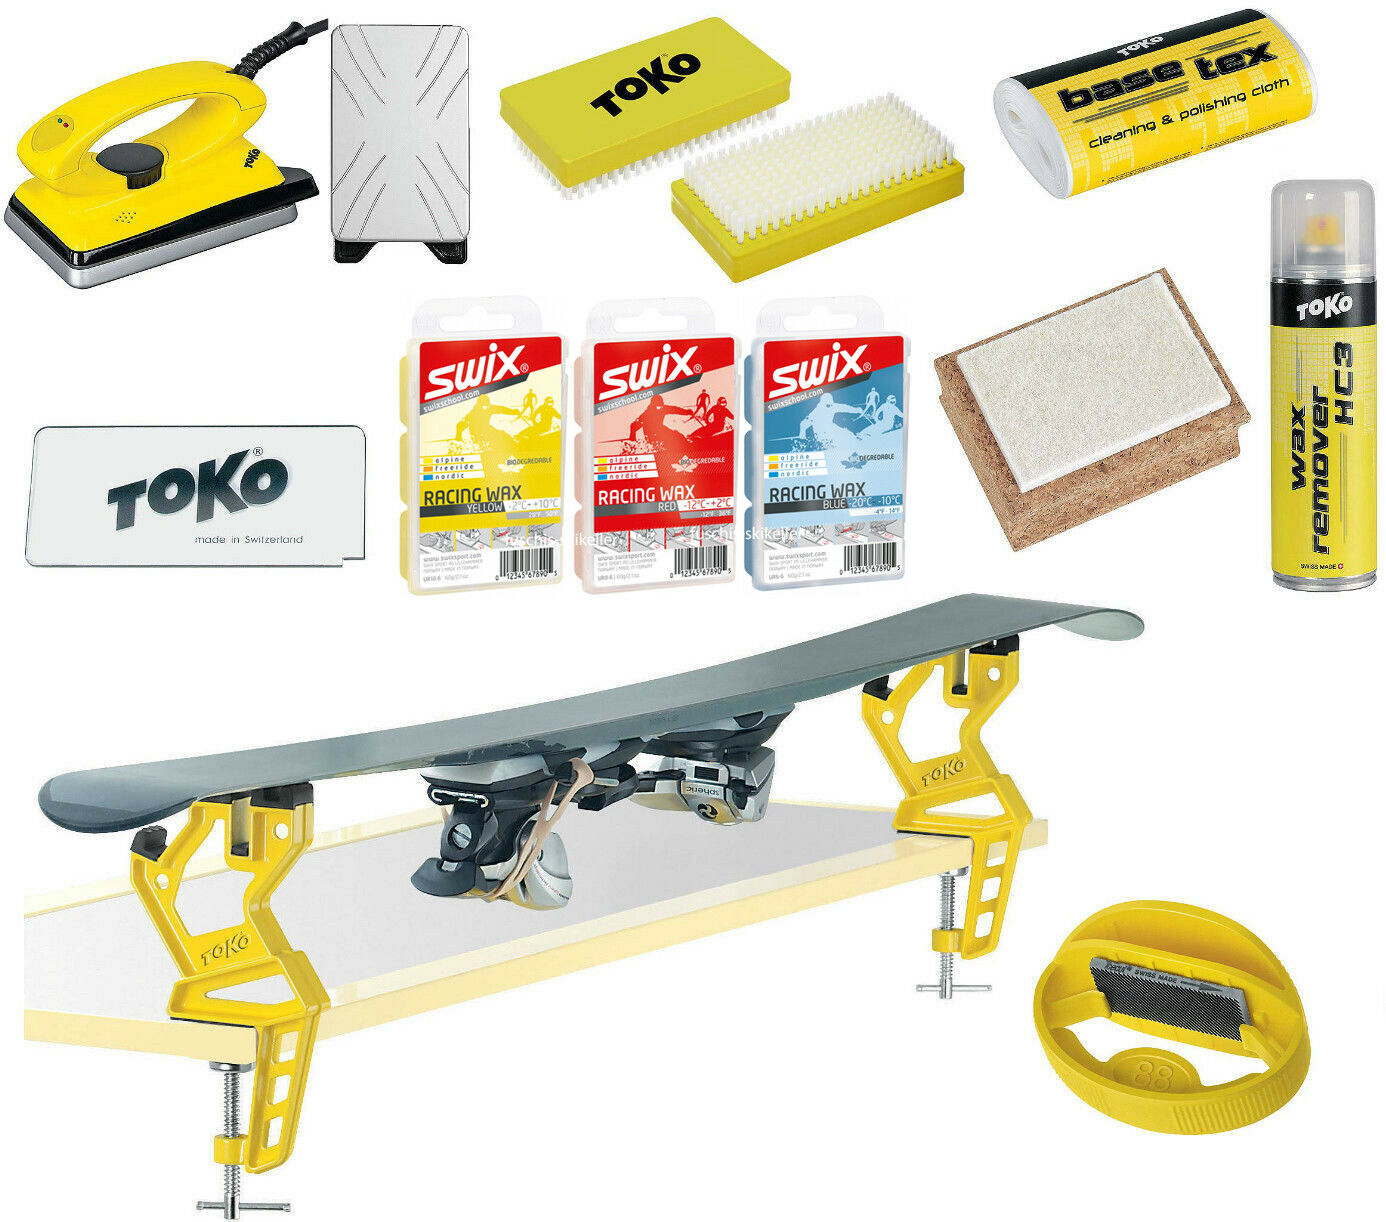 Toko Skiwax Set with Ski Clamp Ski Vise and Edge Tuner Sharpener 11-Teilig